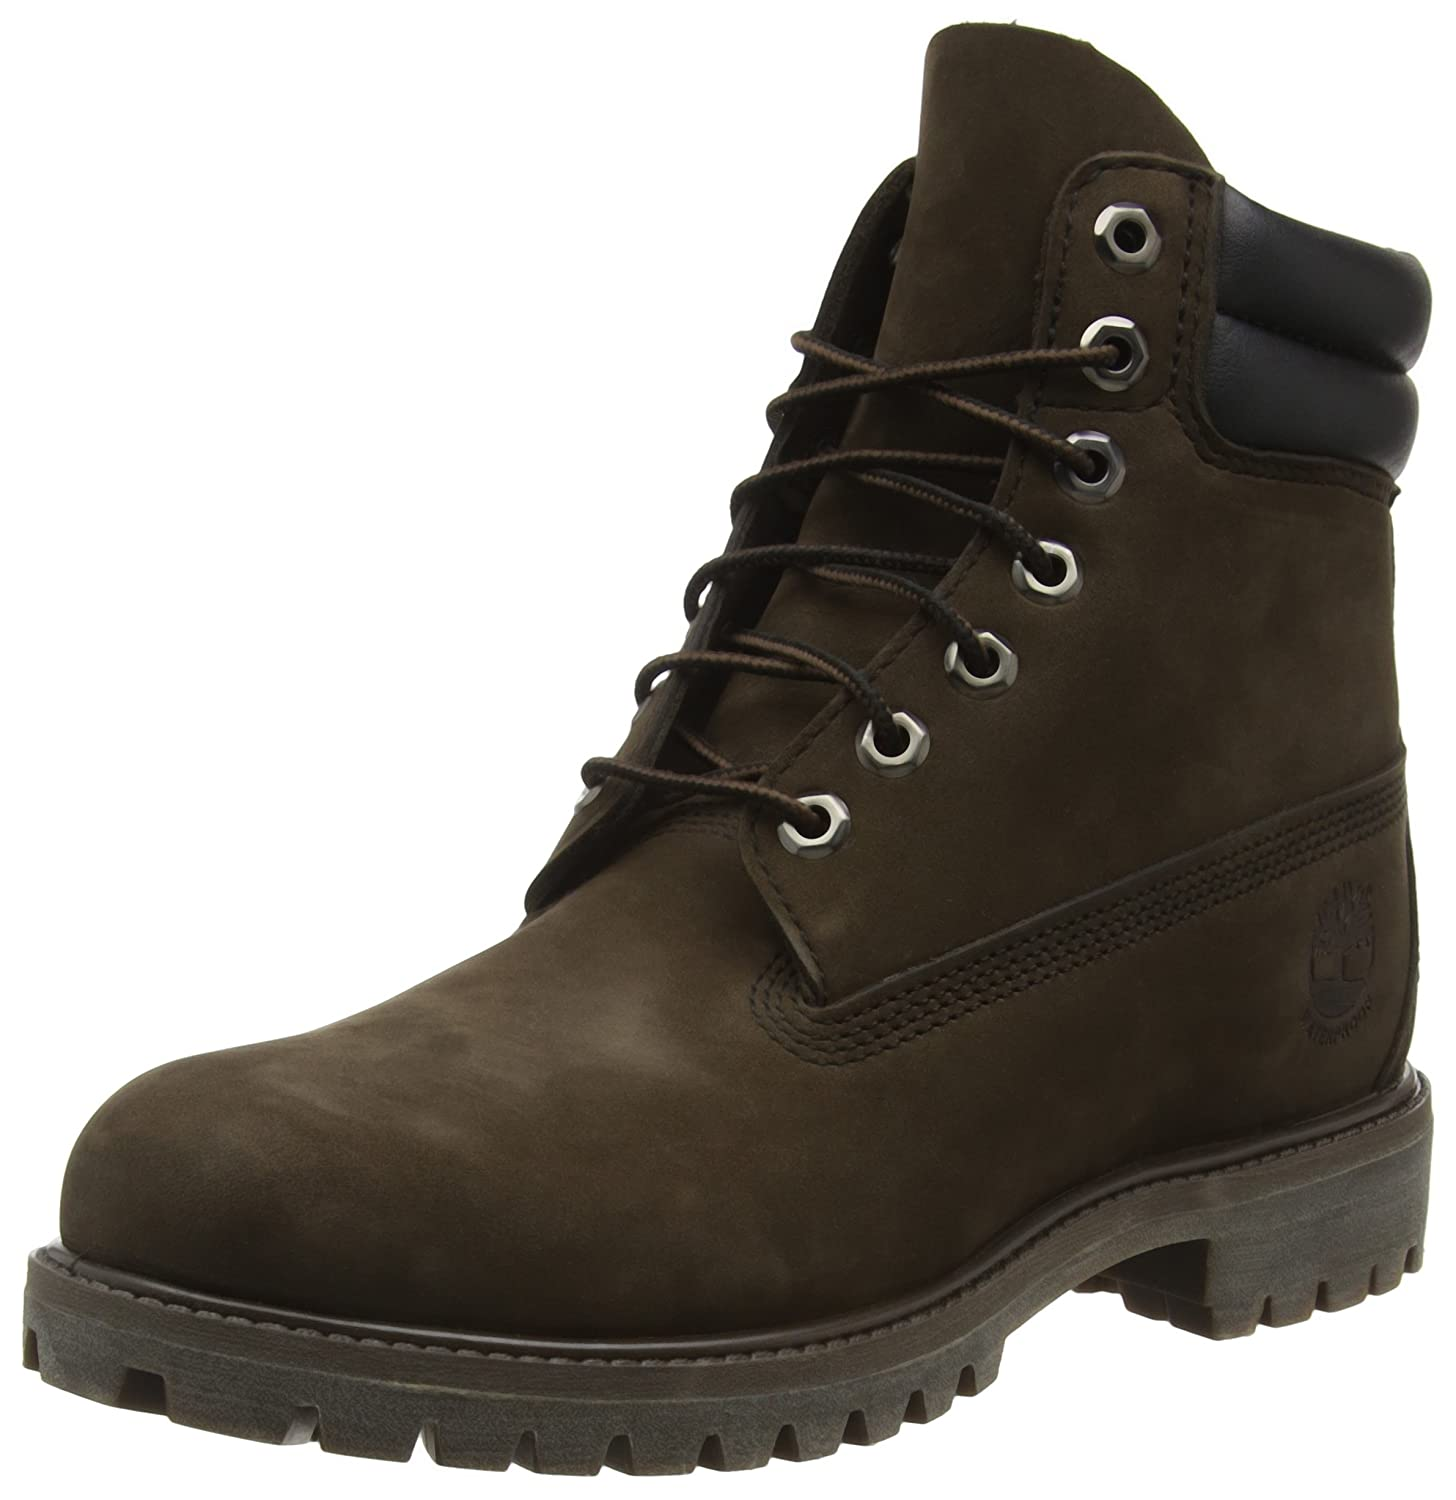 TALLA 40 EU. Timberland 6 In Double Collar Waterproof (Wide Fit), Botas para Hombre